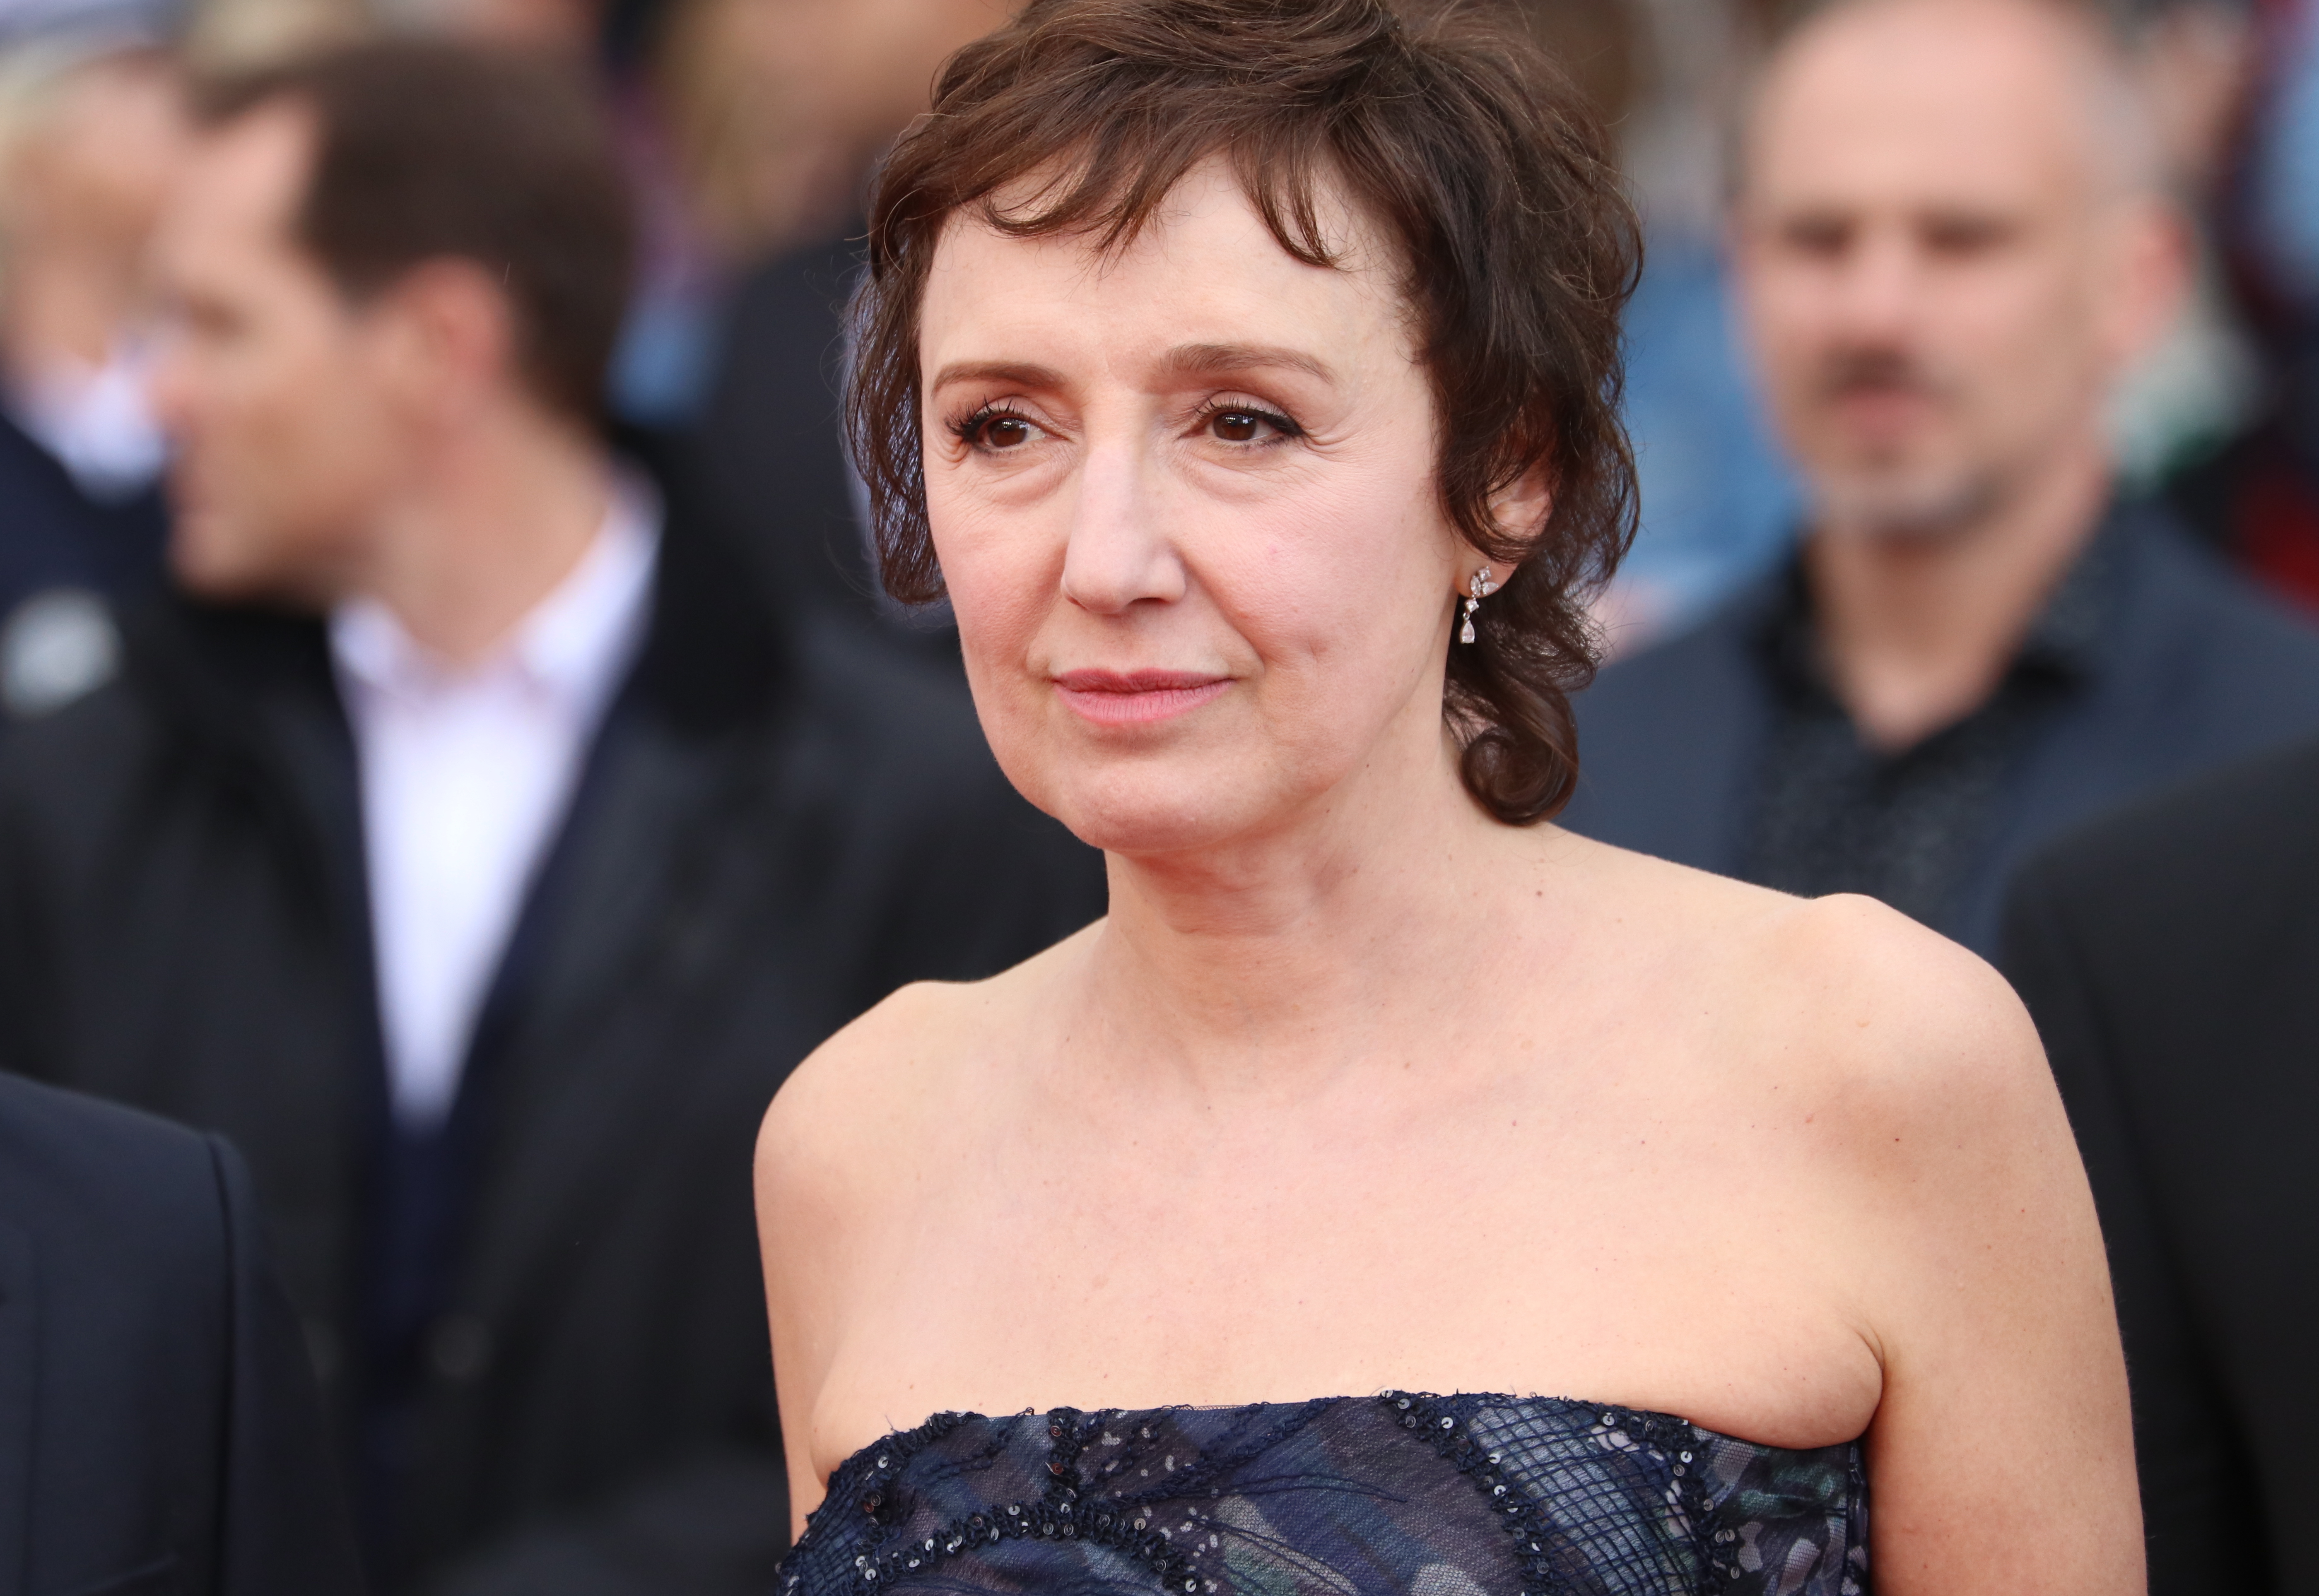 Cannes 2018: Nicoletta Braschi sul red carpet di Lazzaro Felice